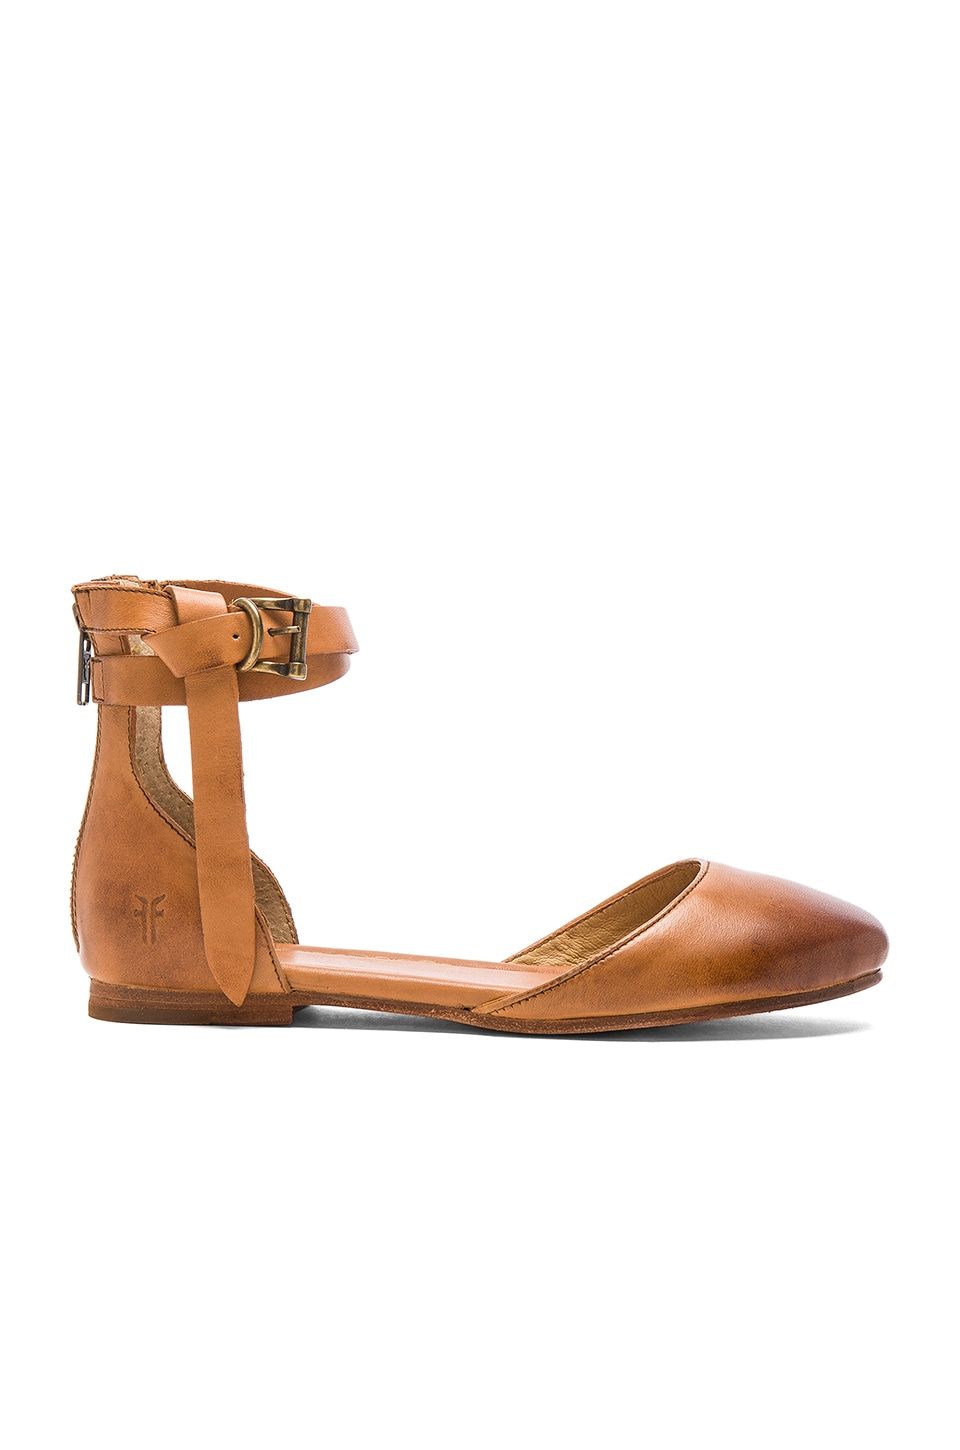 Carson Knotted Ballet Flat